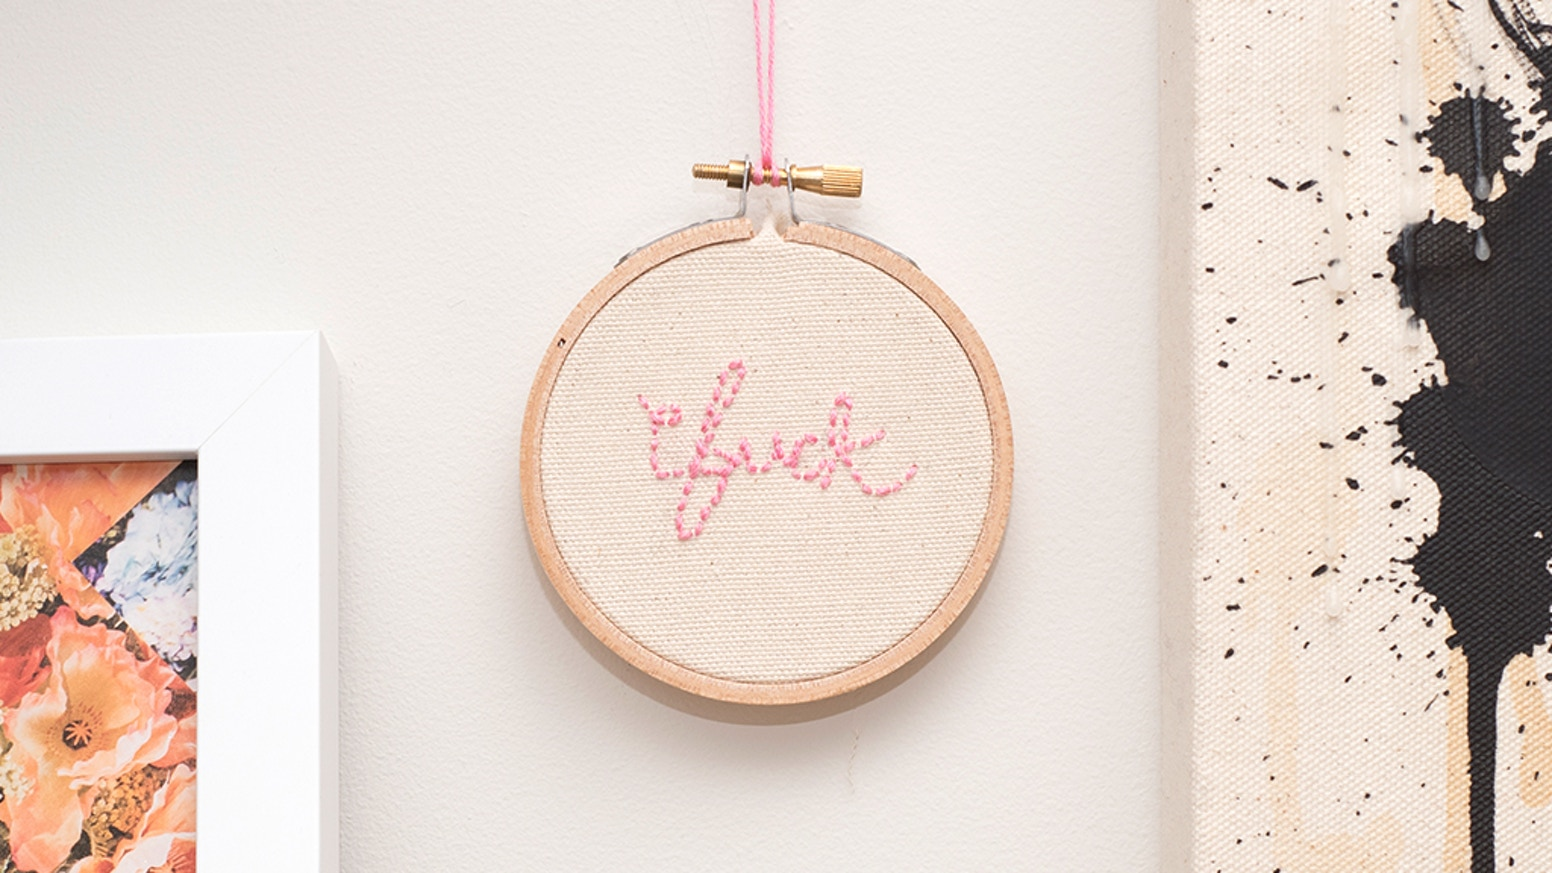 Make 100 Rainbow Fck Embroidery By Emily Hoerdemann 24 Hours To